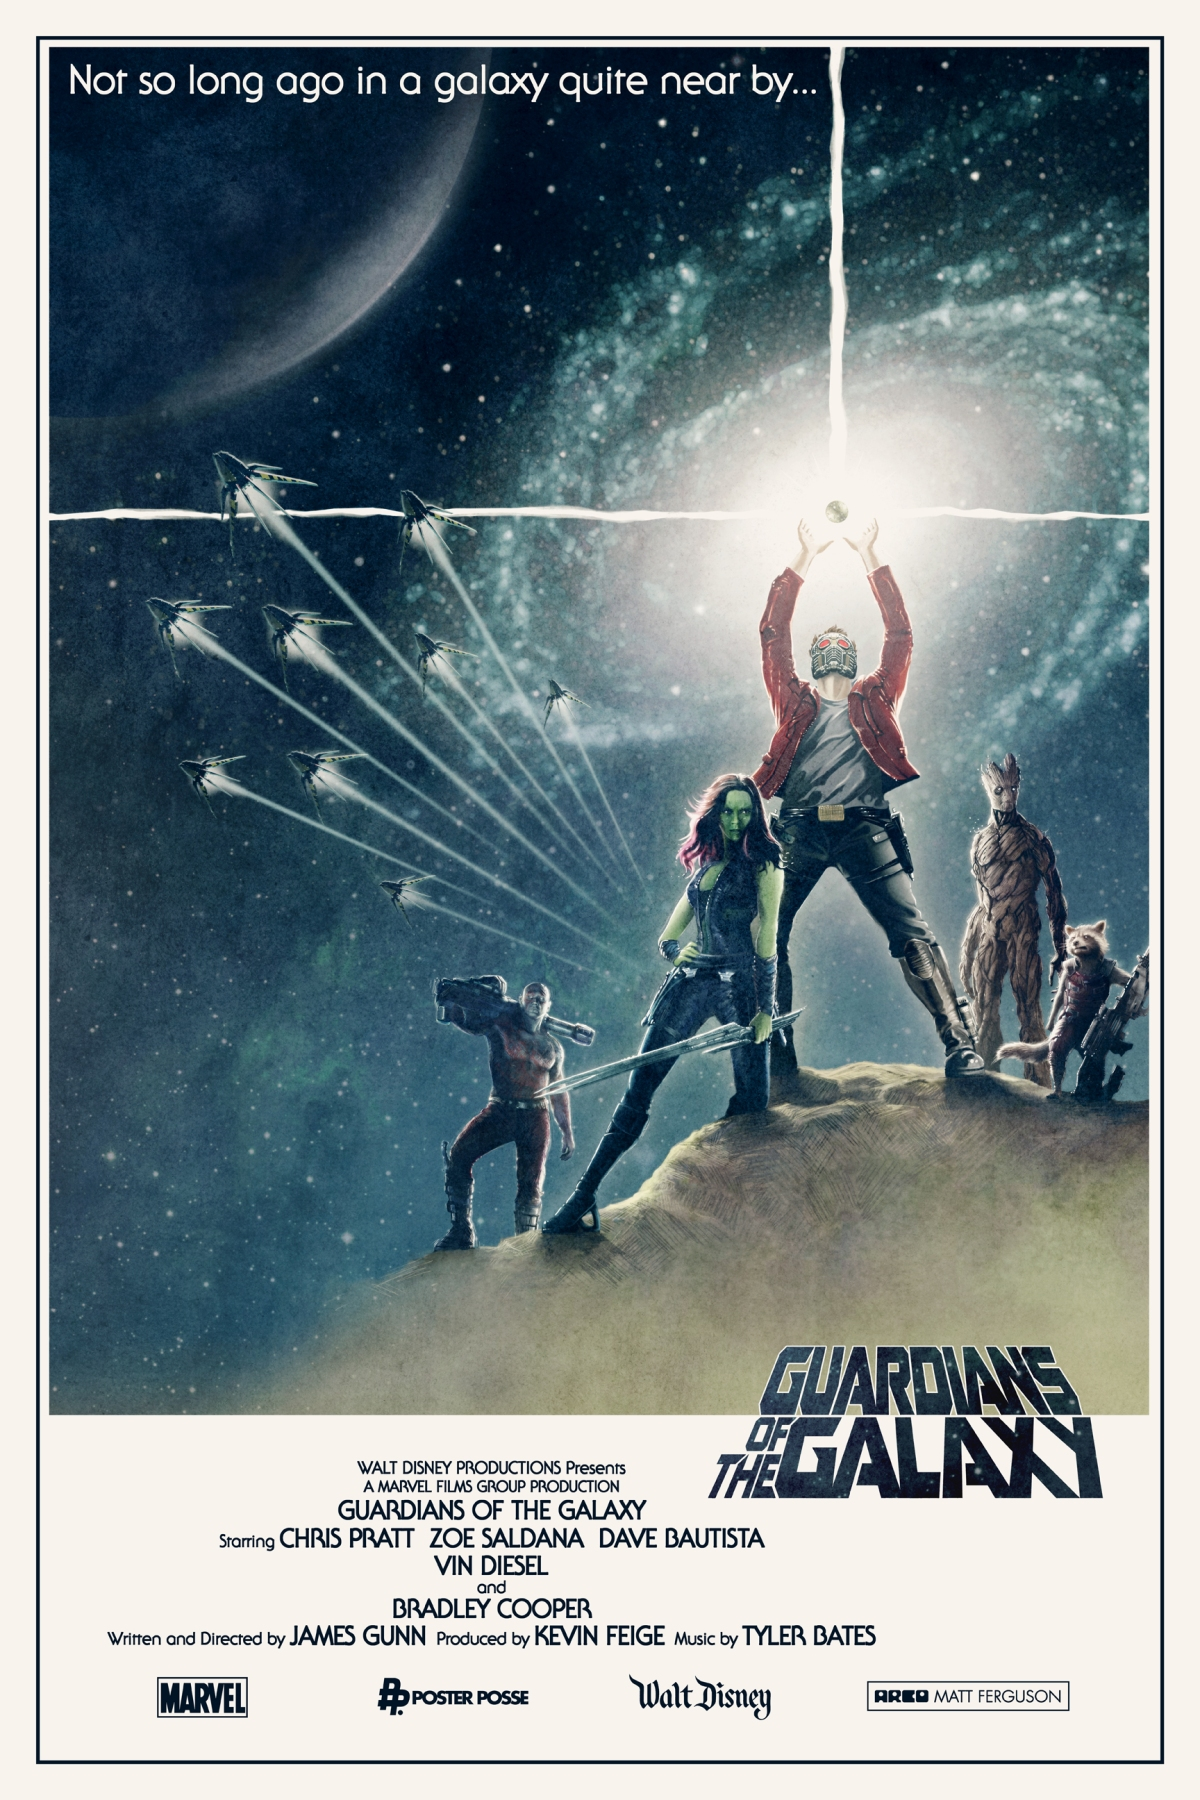 Guardians of the Galaxy movie poster star wars